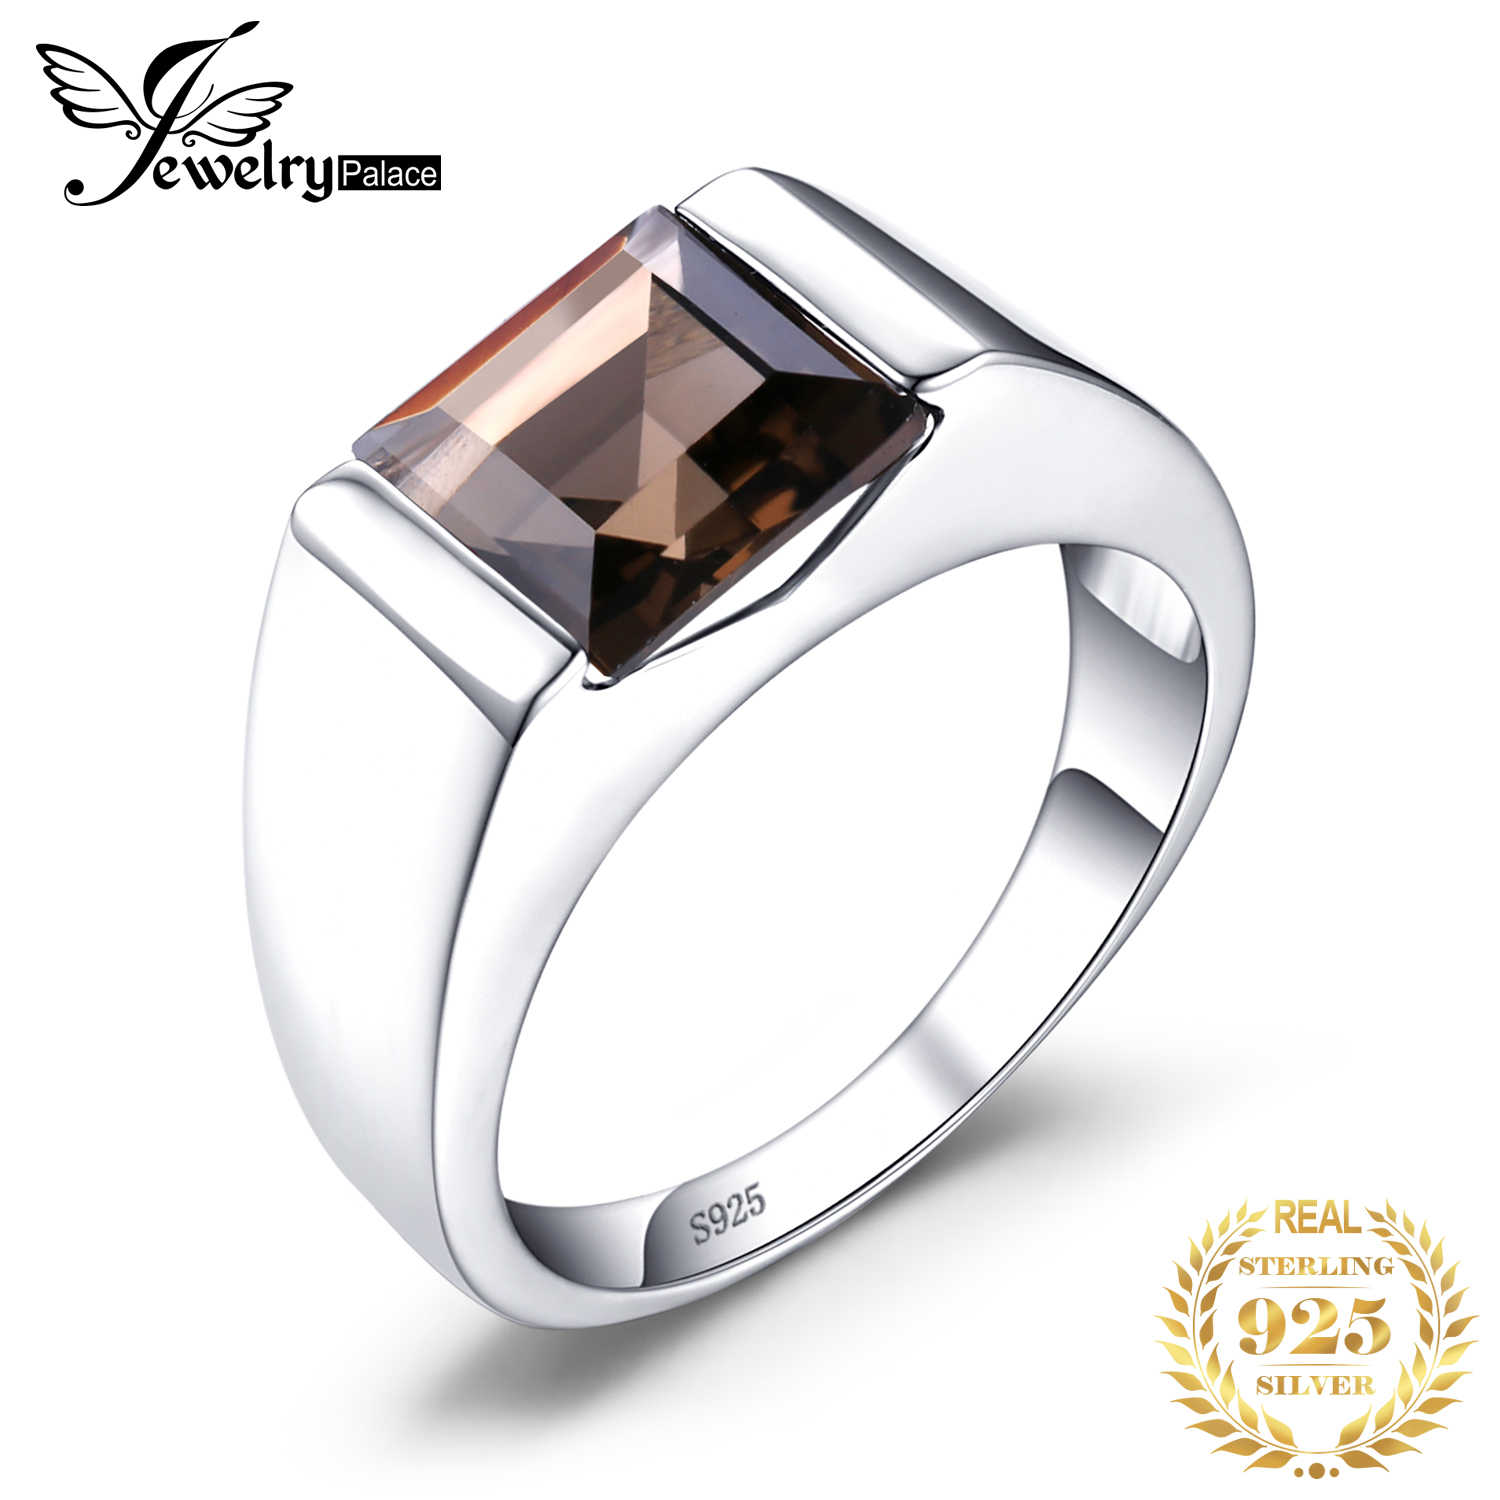 JewelryPalace Men Rings Square Luxry 2.2ct Genuine Smoky Quartz 925 Sterling Silver Wedding Rings Gemstone Fine Jewelry